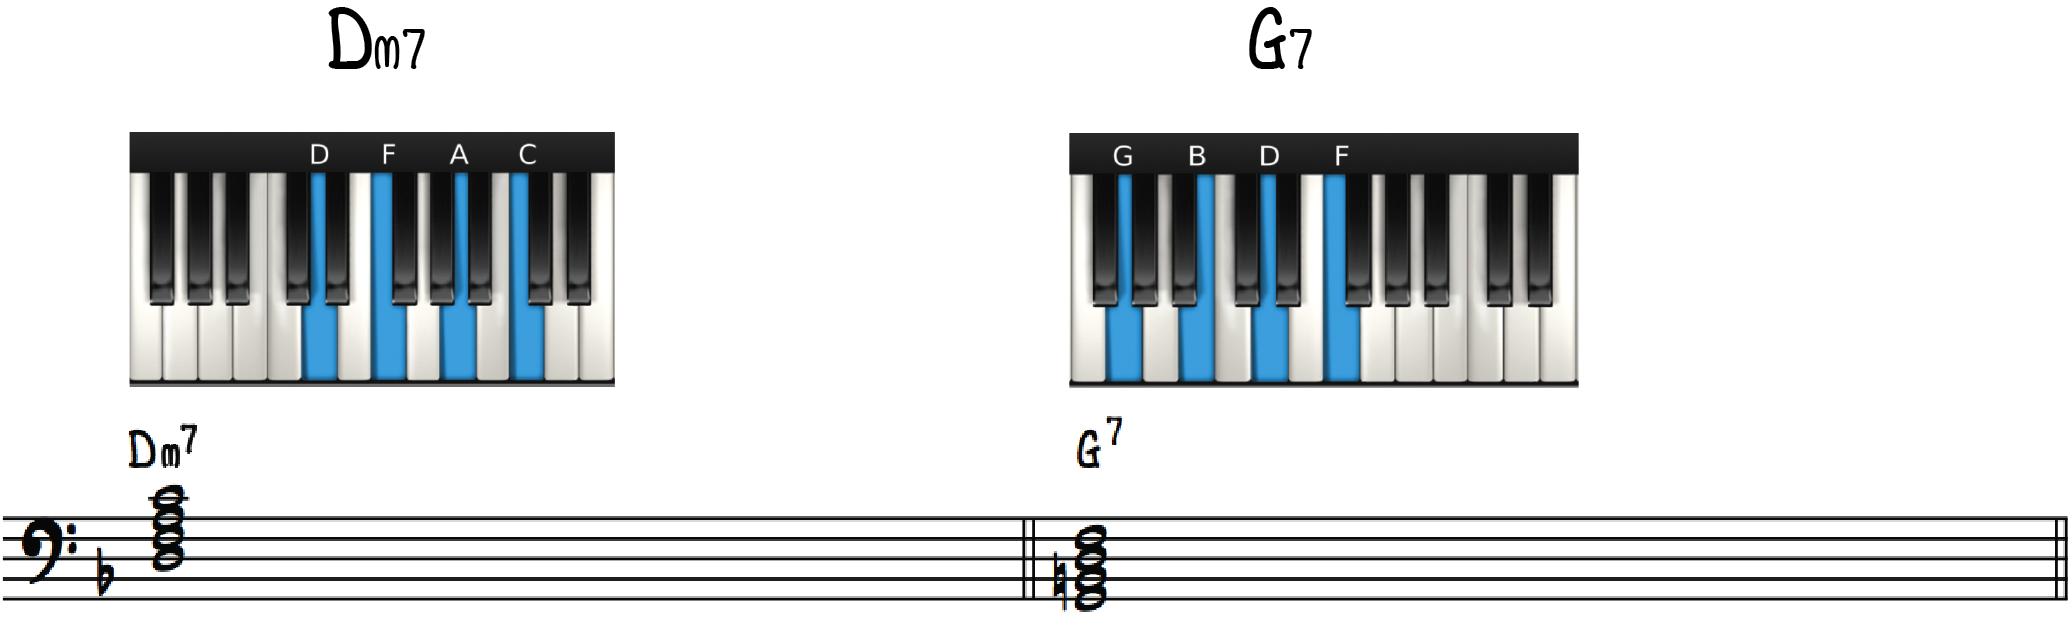 Examples of Seventh Chords (Dm7, G7)